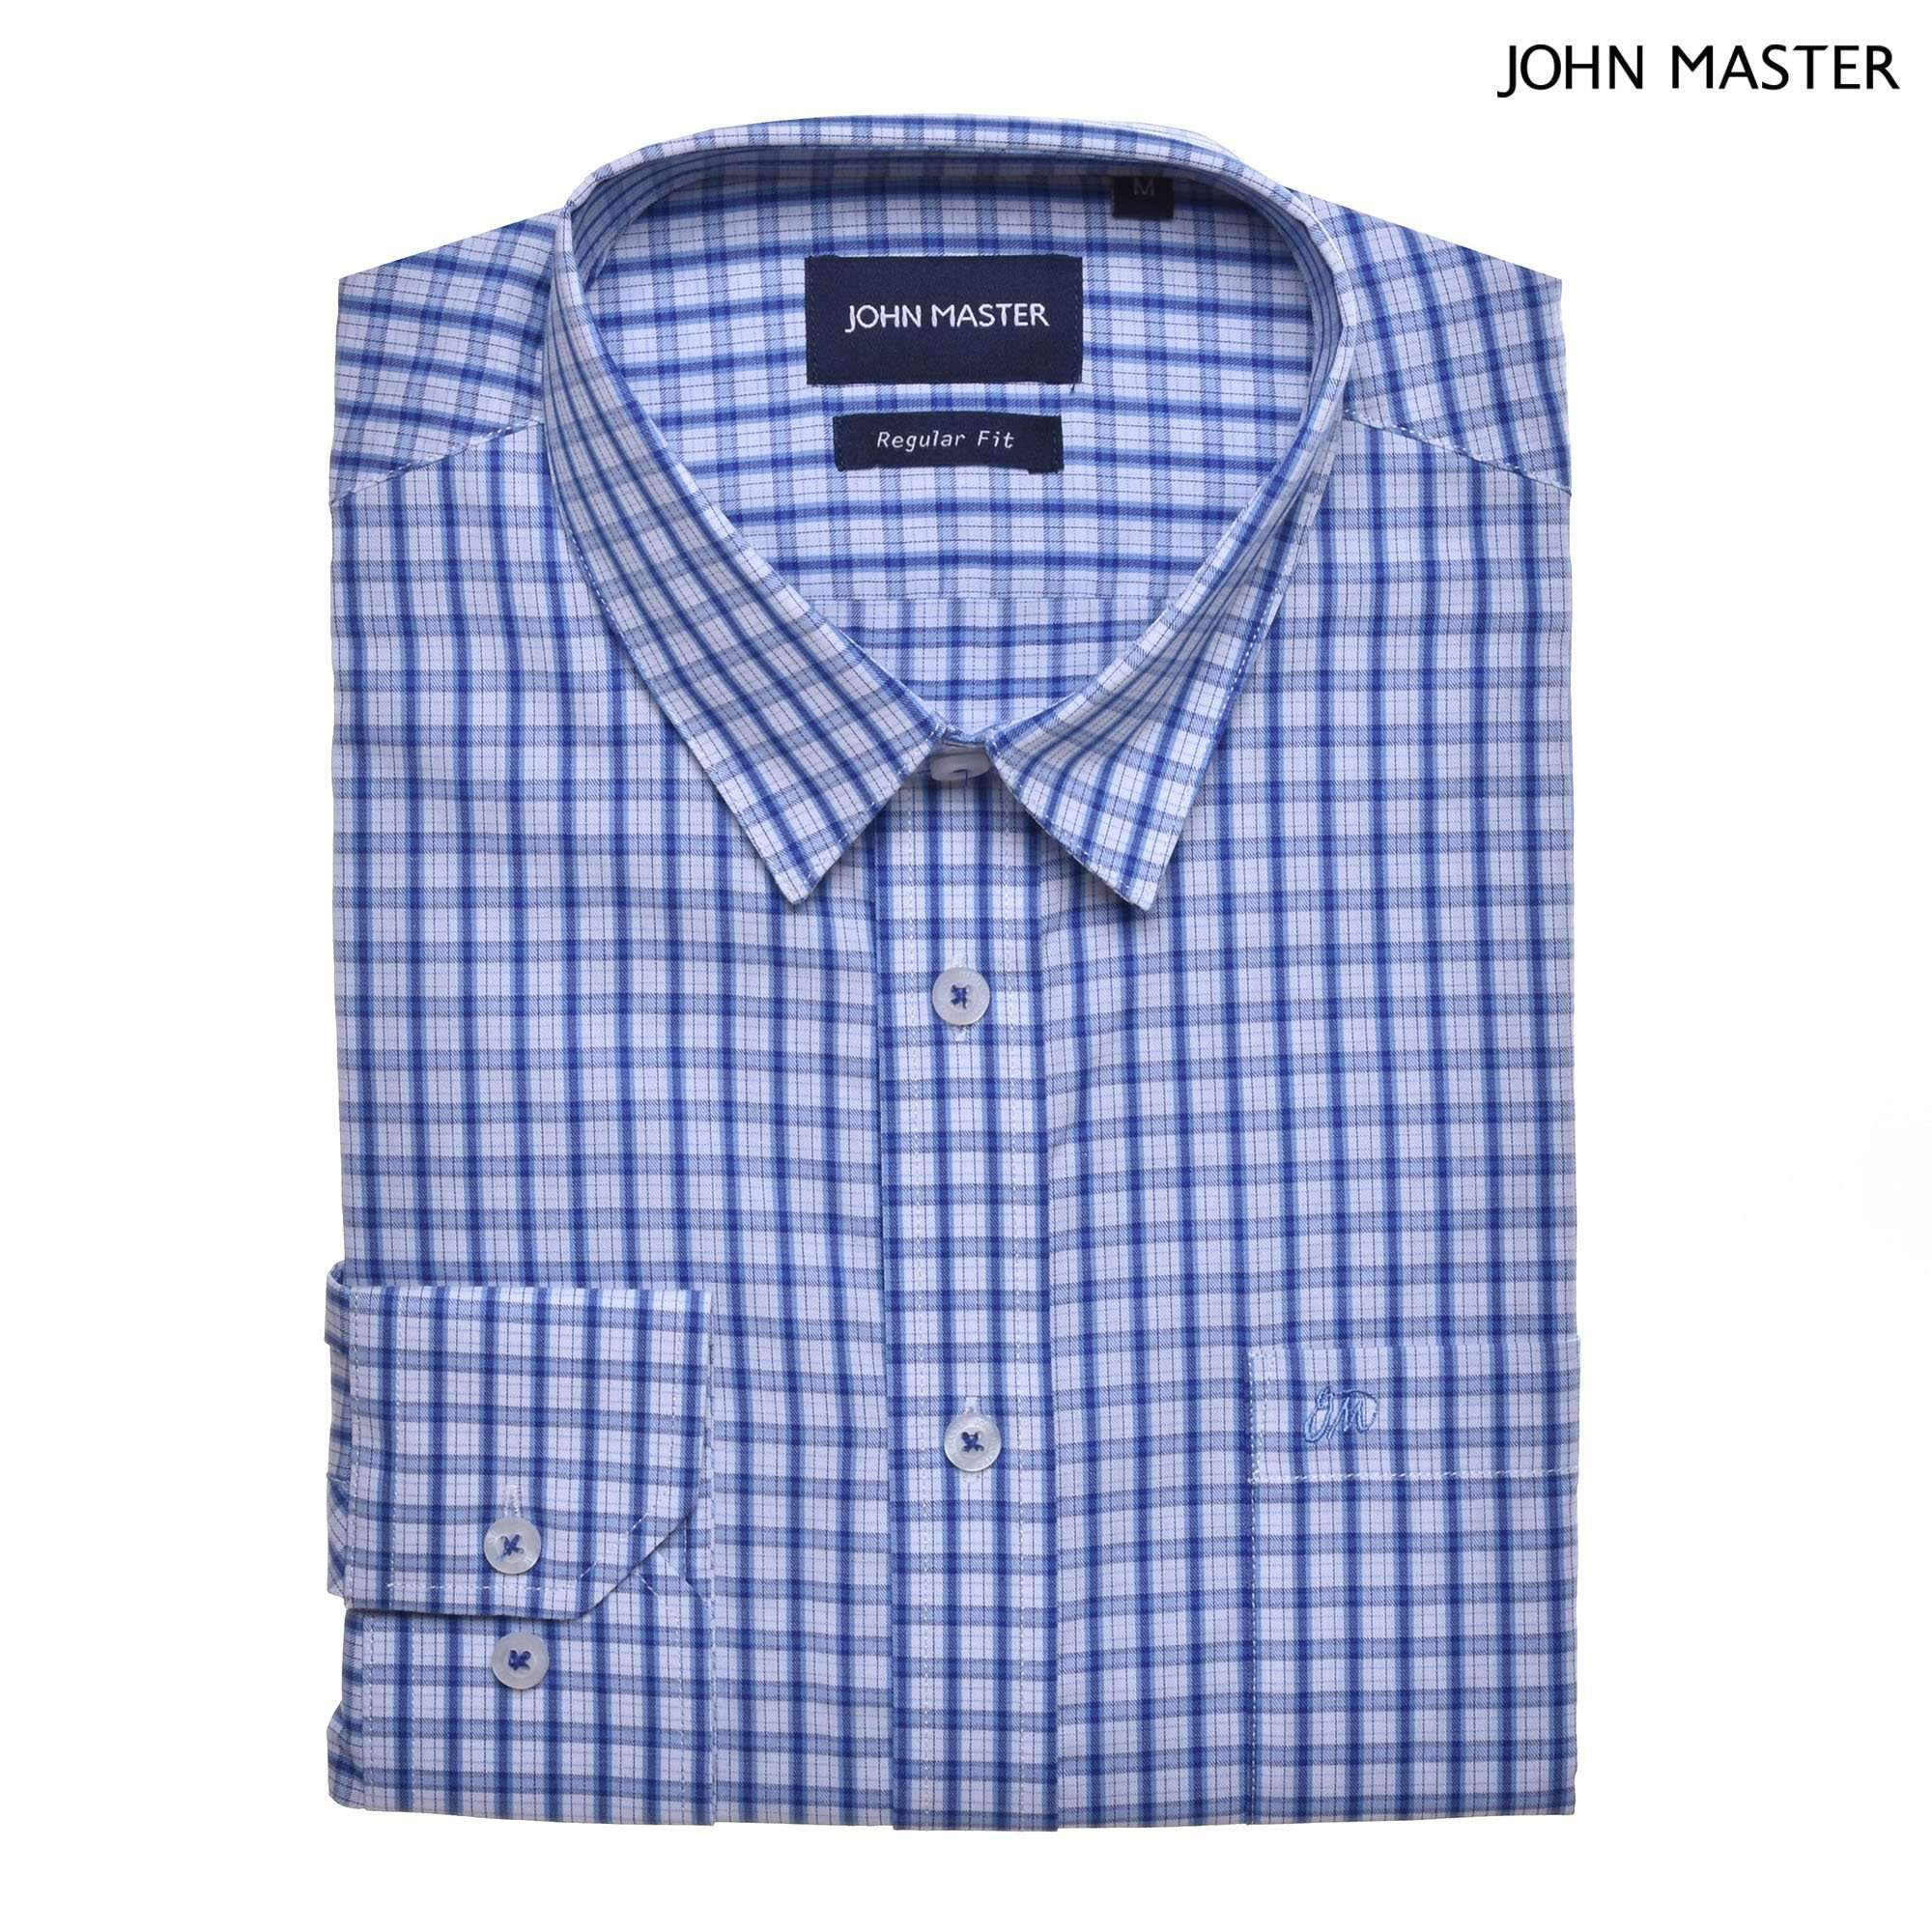 John Master Business Shirt Long Sleeve Blue 7087007 : Buy John Master online at CMG.MY